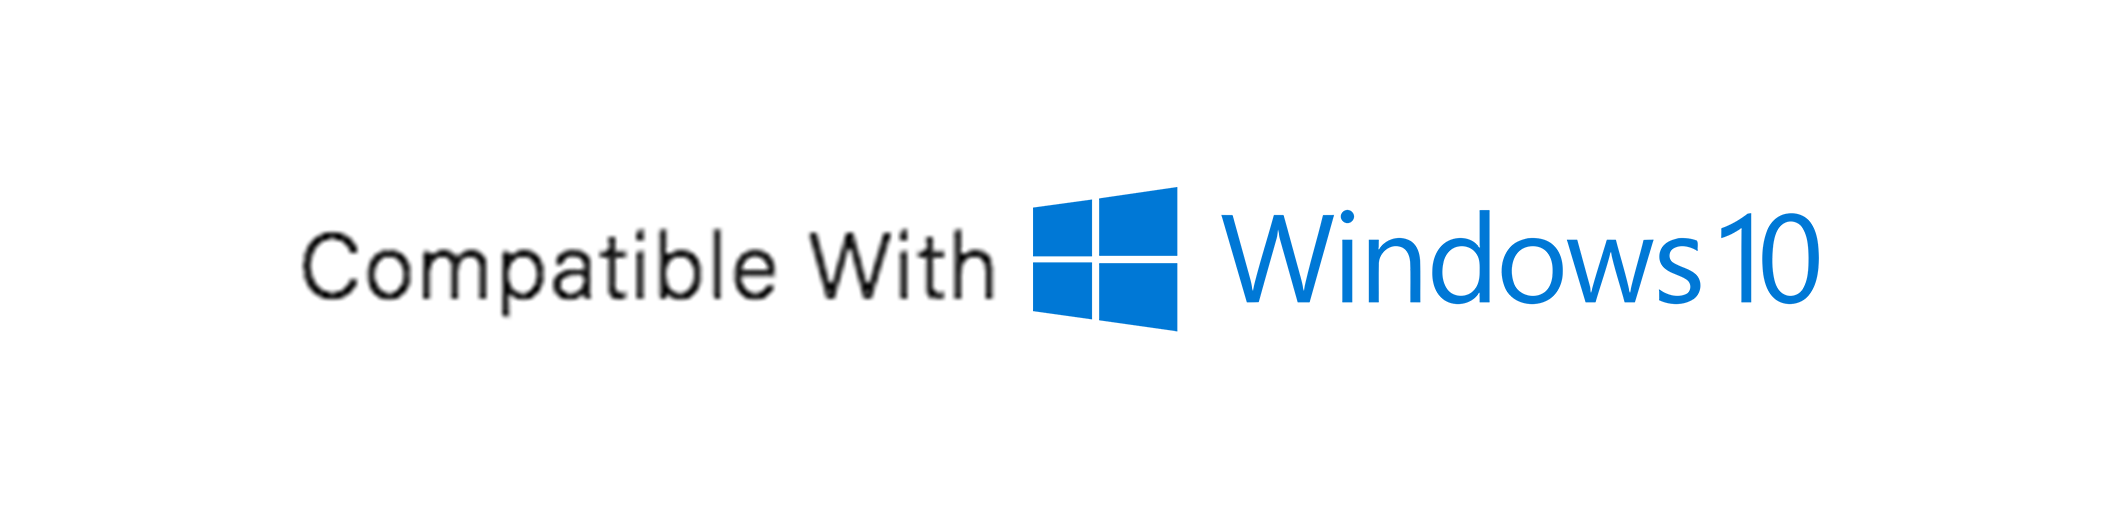 Compatible with Windows 10.png